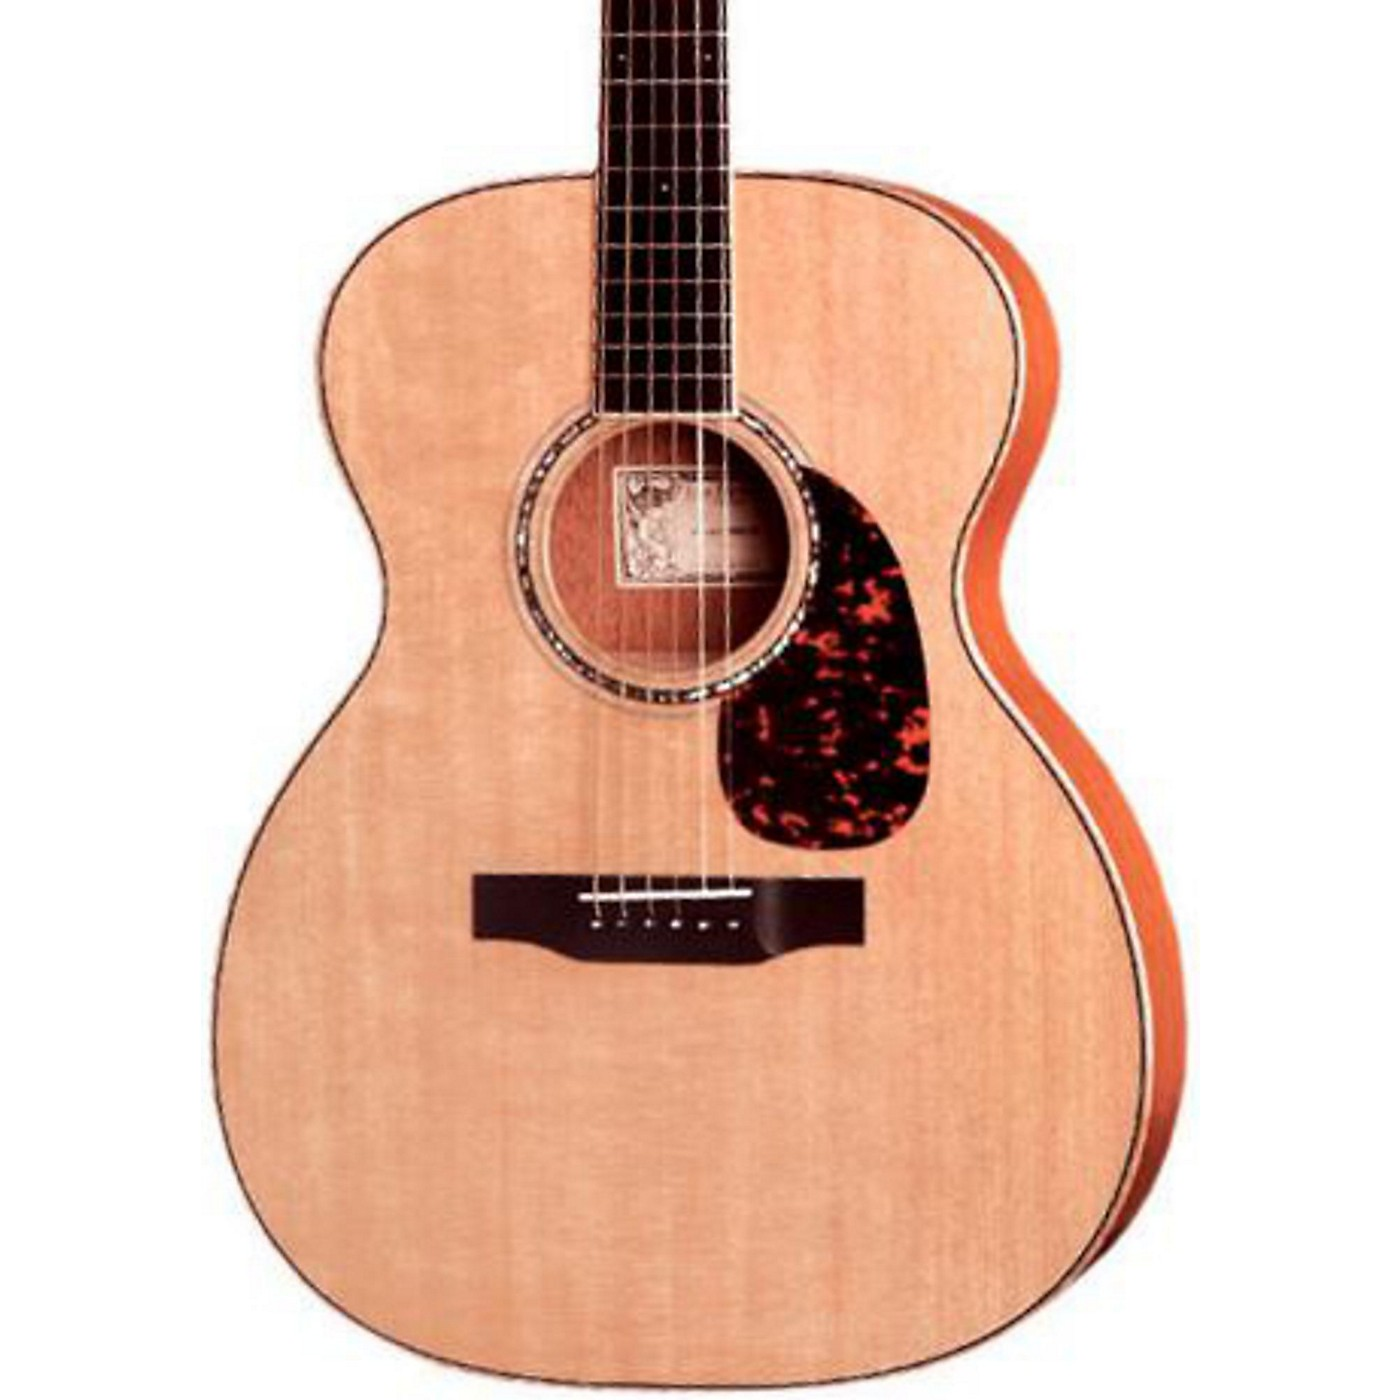 Larrivee OM-05 Mahogany Select Series Orchestra Model Acoustic Guitar thumbnail